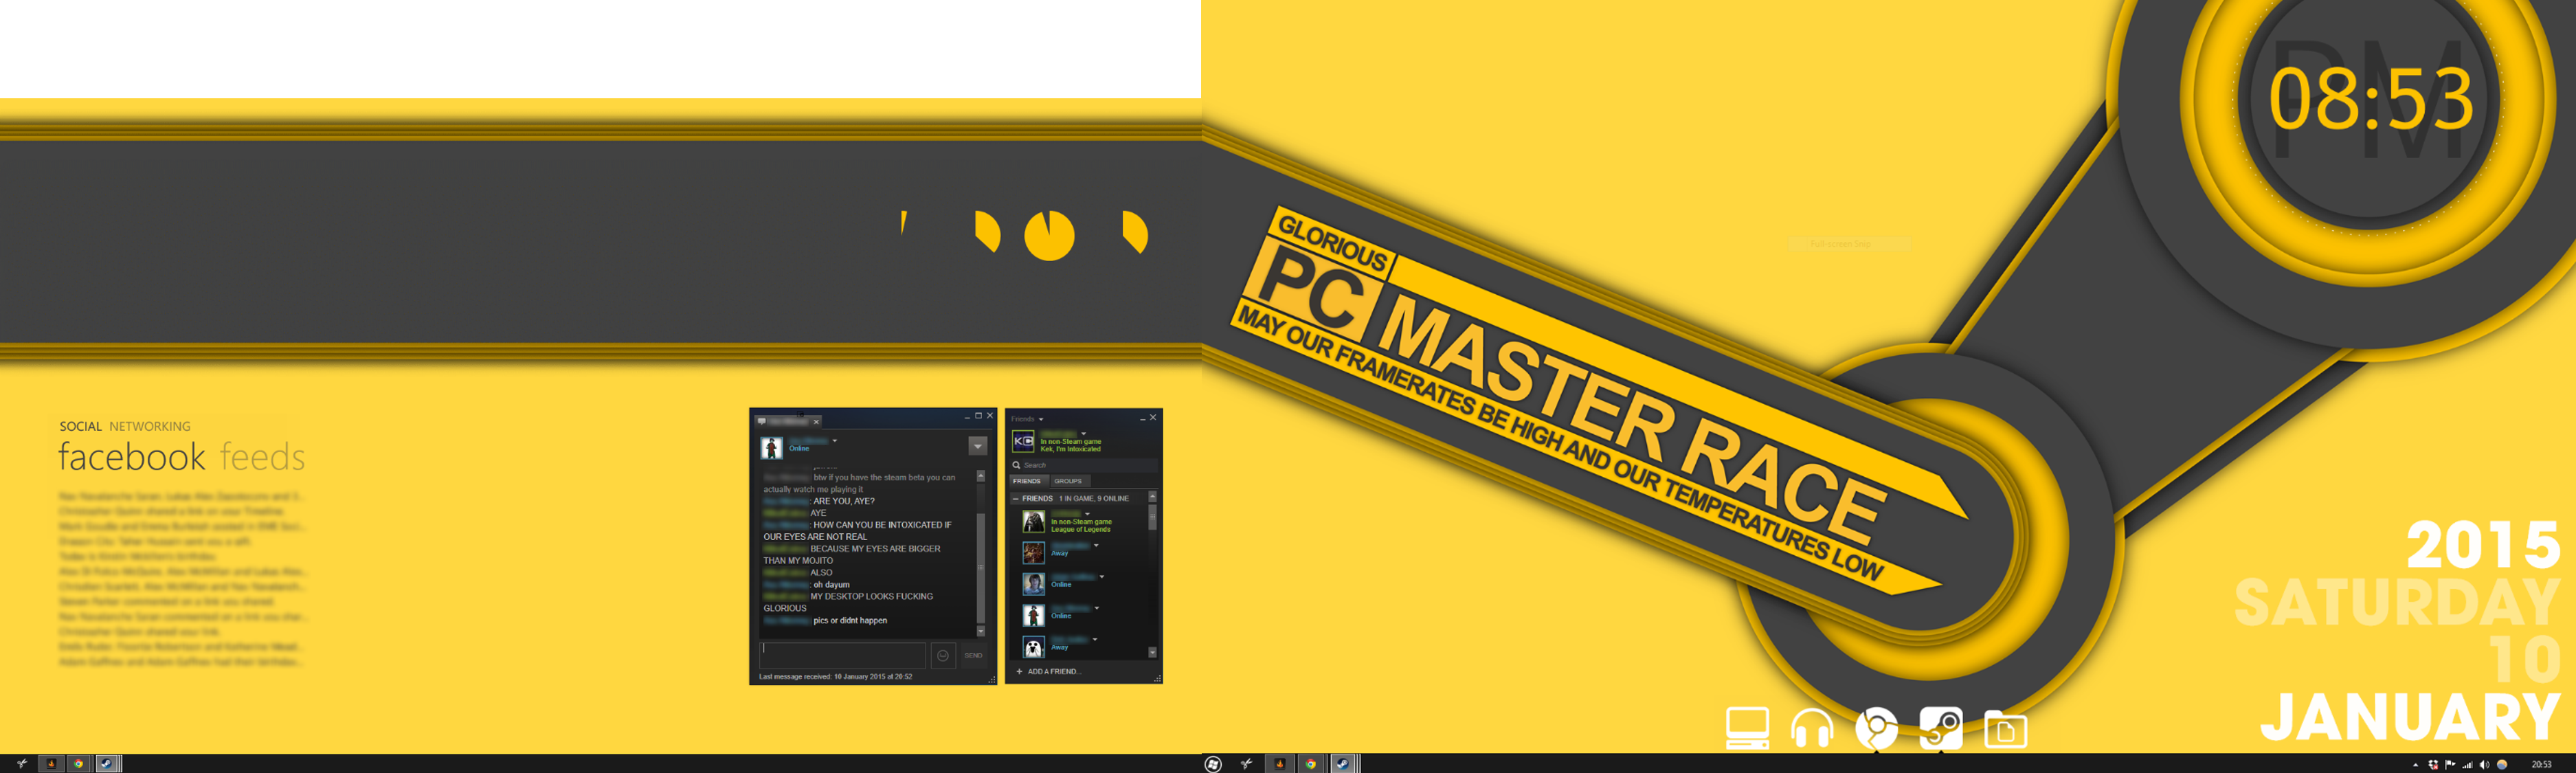 Seen a wonderful wallpaper posted to PCMR creativity got the better 3749x1125